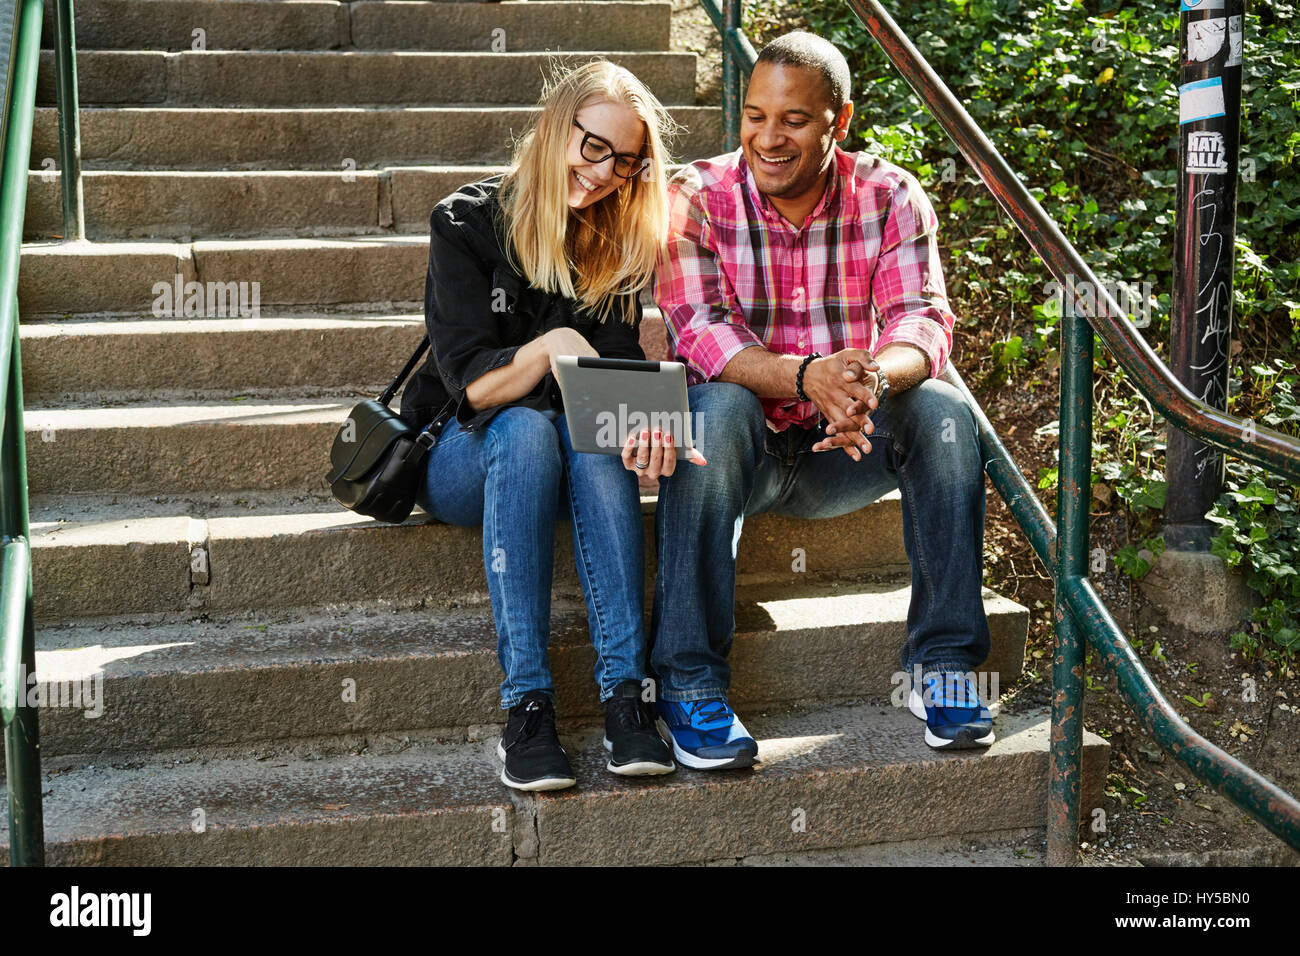 Sweden, Man and woman sitting side by side on steps and looking at digital tablet - Stock Image